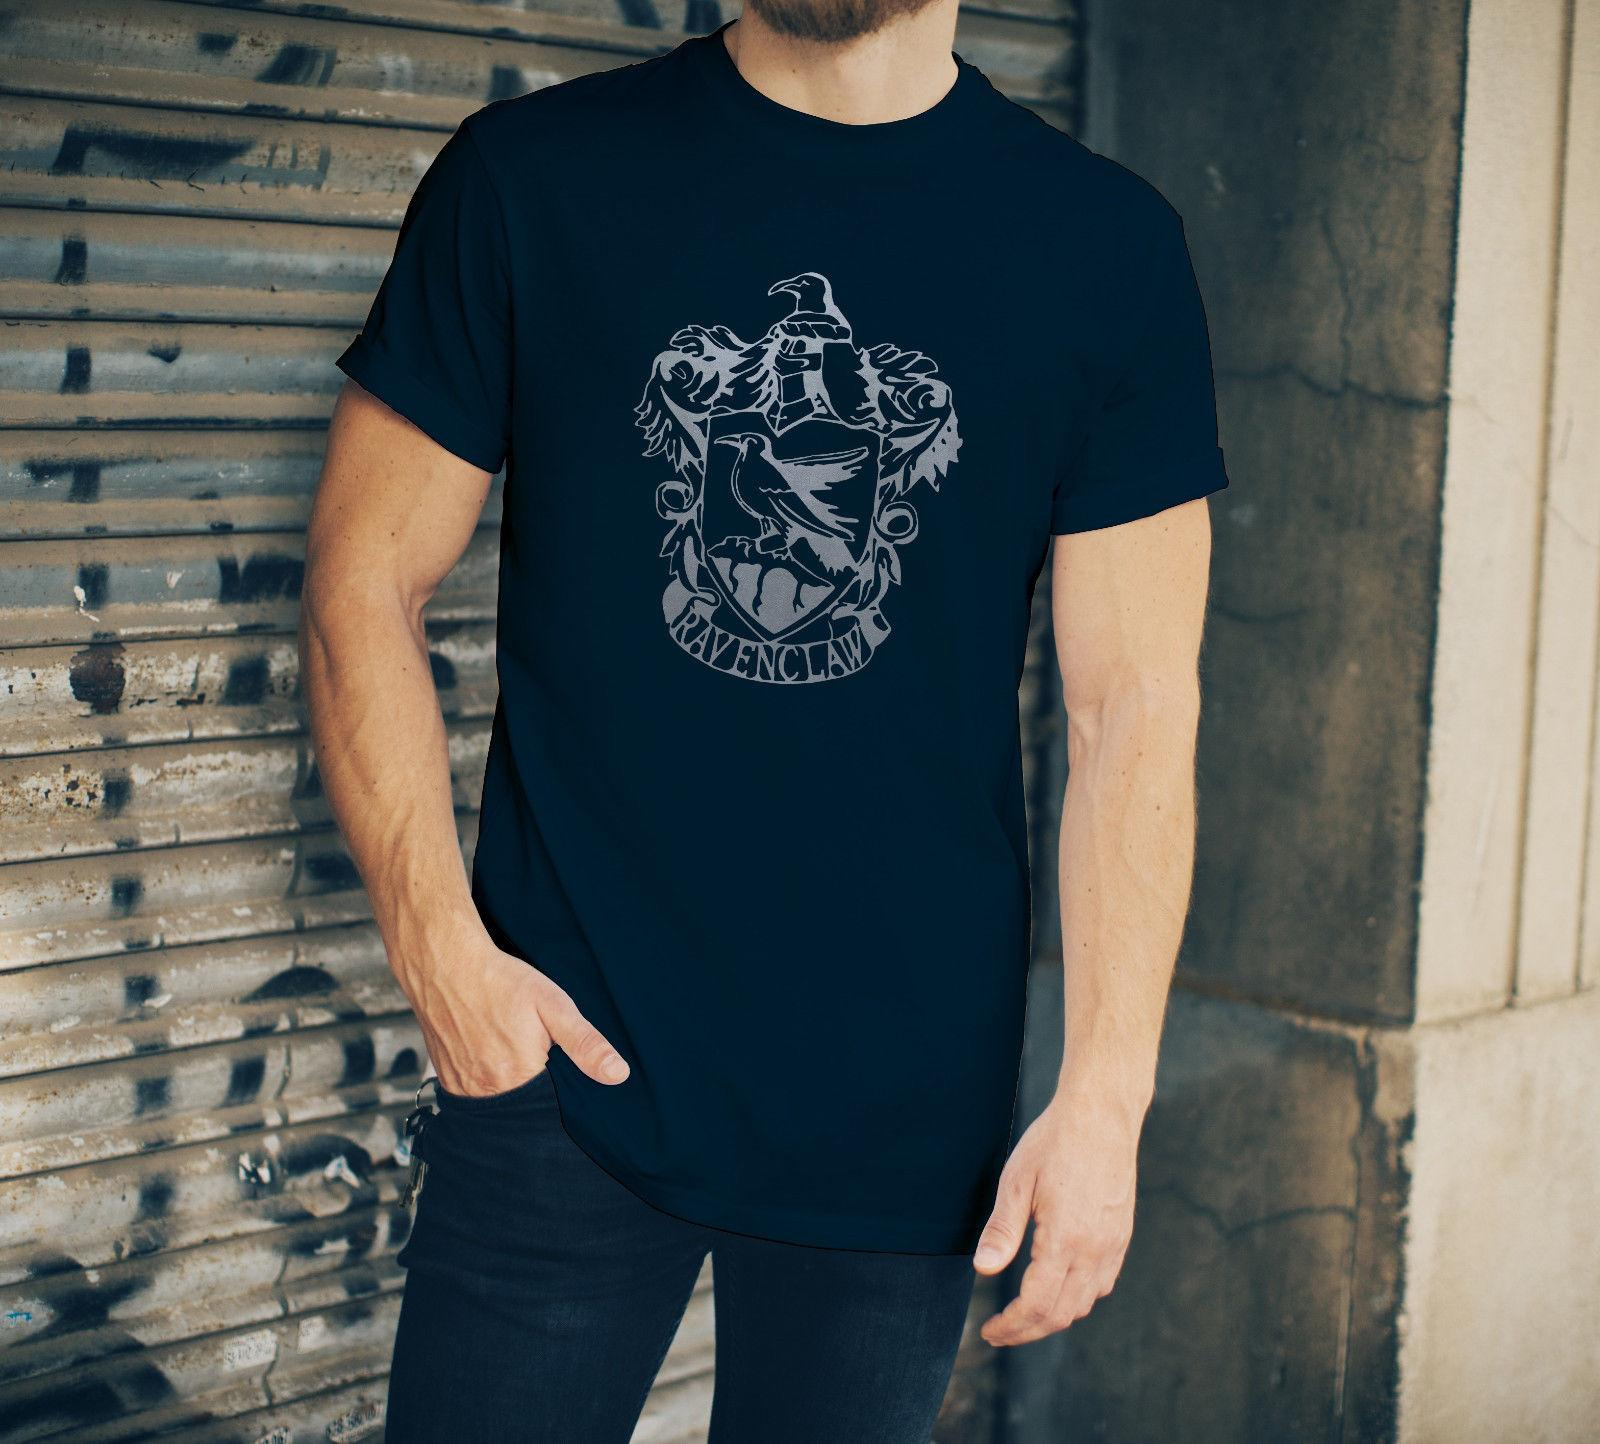 a3704646b56b Harry Potter Ravenclaw Mens T Shirt Navy Blue With Silver Crest Funny  Unisex Casual Designer T Shirts Short Sleeve Shirts From Fantees, $12.96|  DHgate.Com